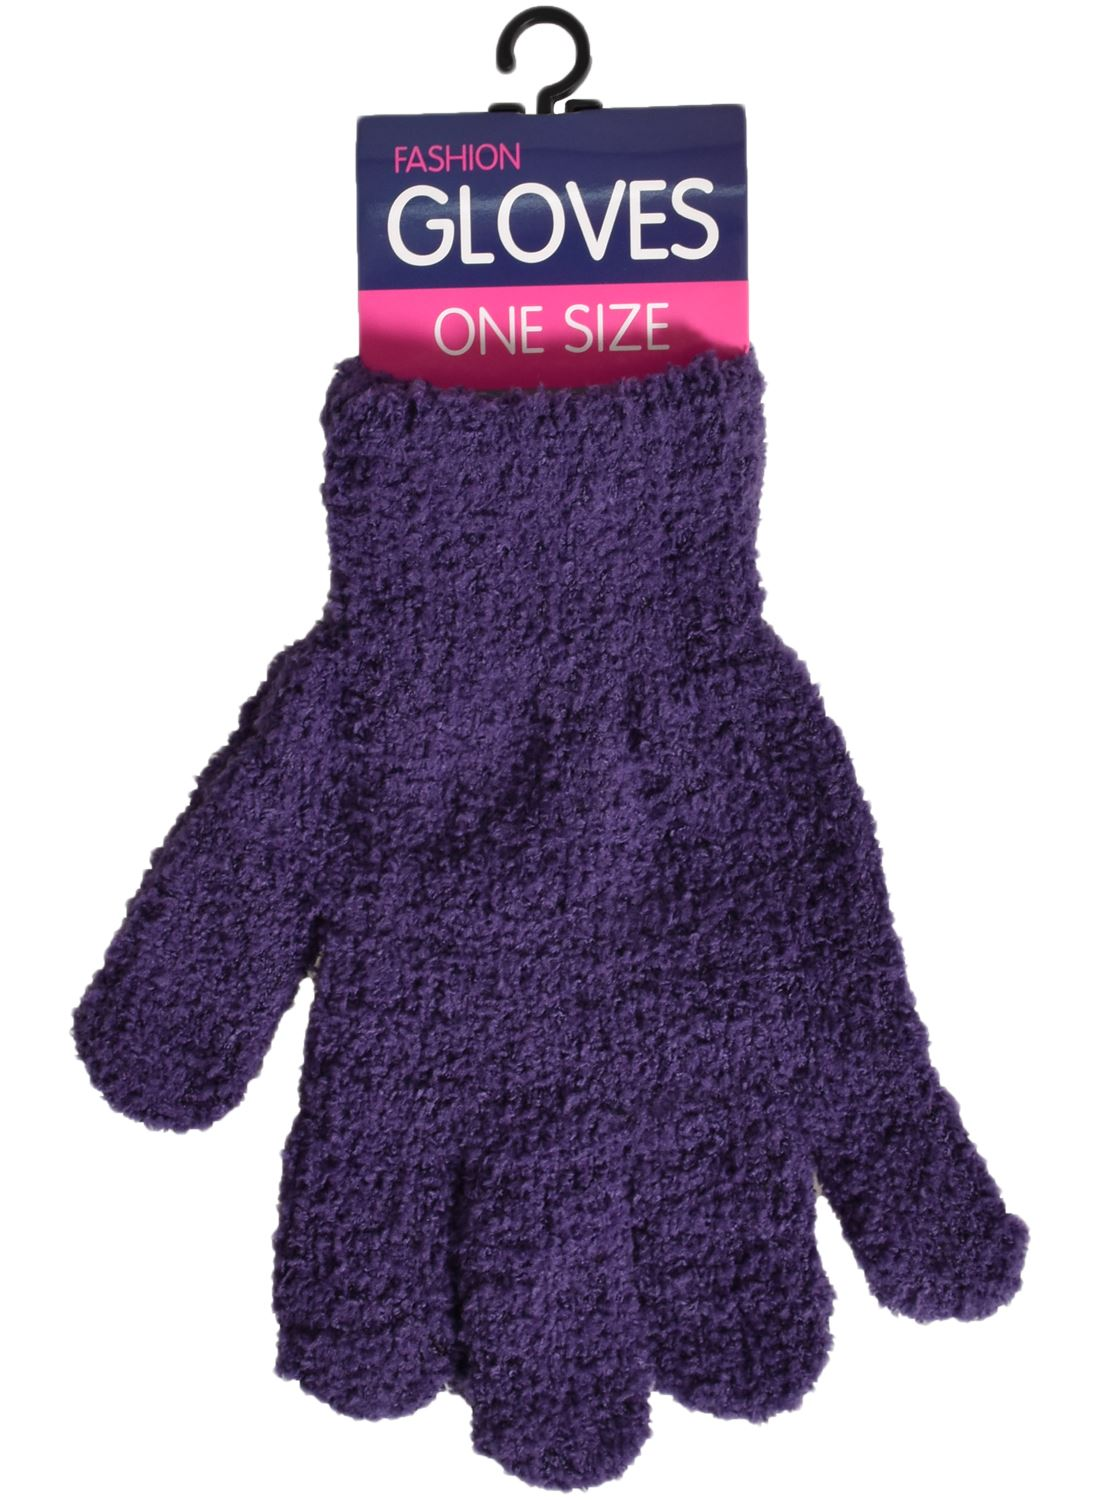 New Ladies Winter Chenille Woolly Knitted Stretchable Outdoor Warm Magic Gloves